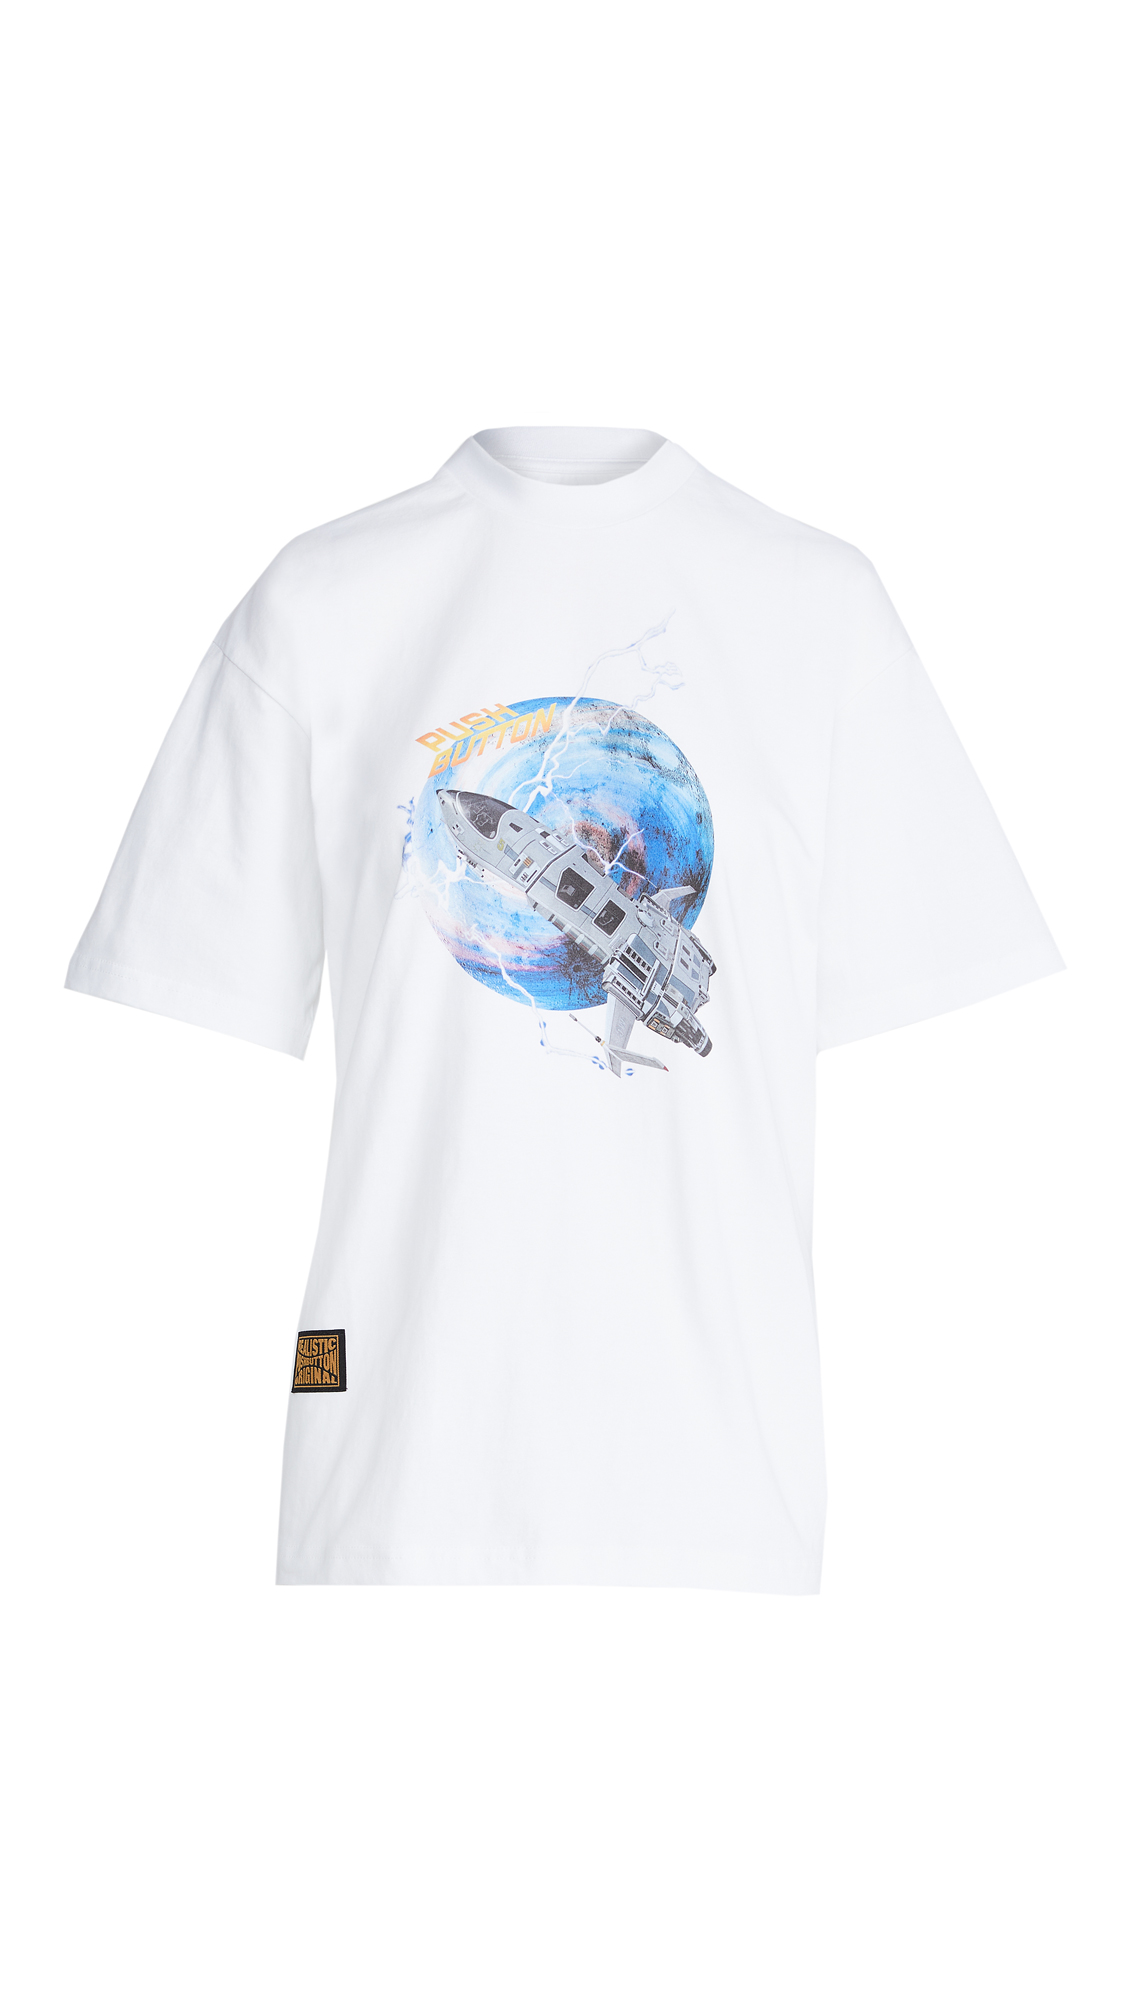 pushBUTTON Spacecraft Short Sleeved T-Shirt